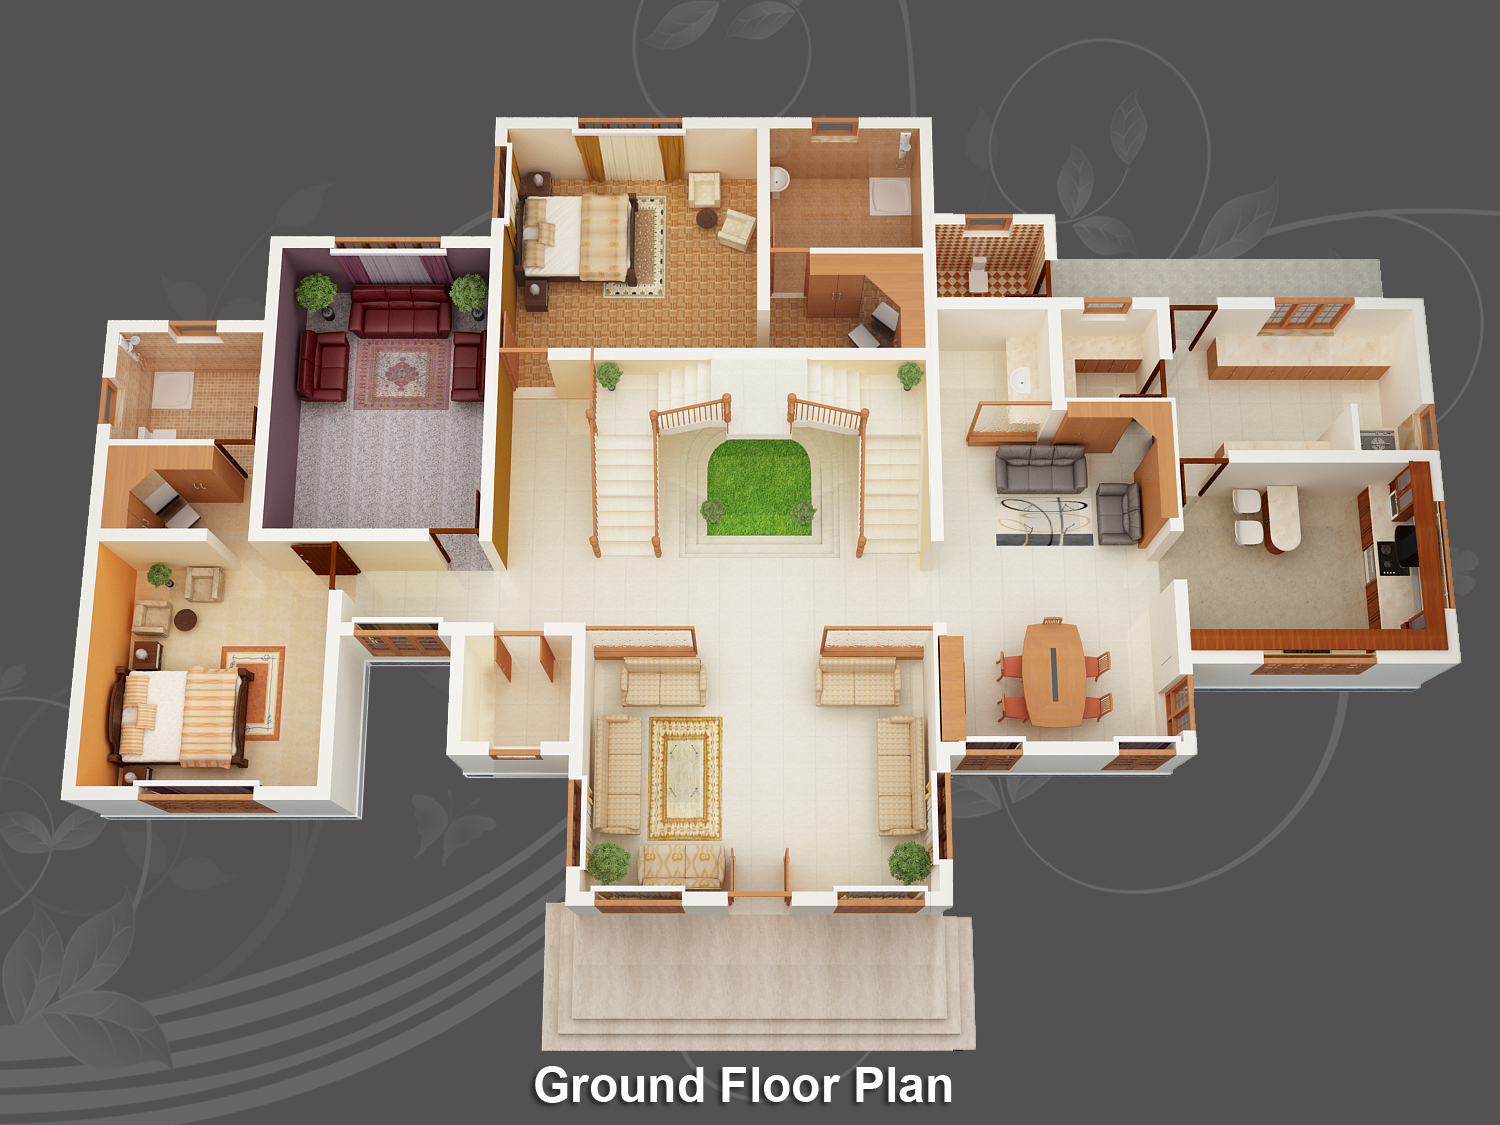 Evens construction pvt ltd 3d house plan 20 05 2011 House plan view